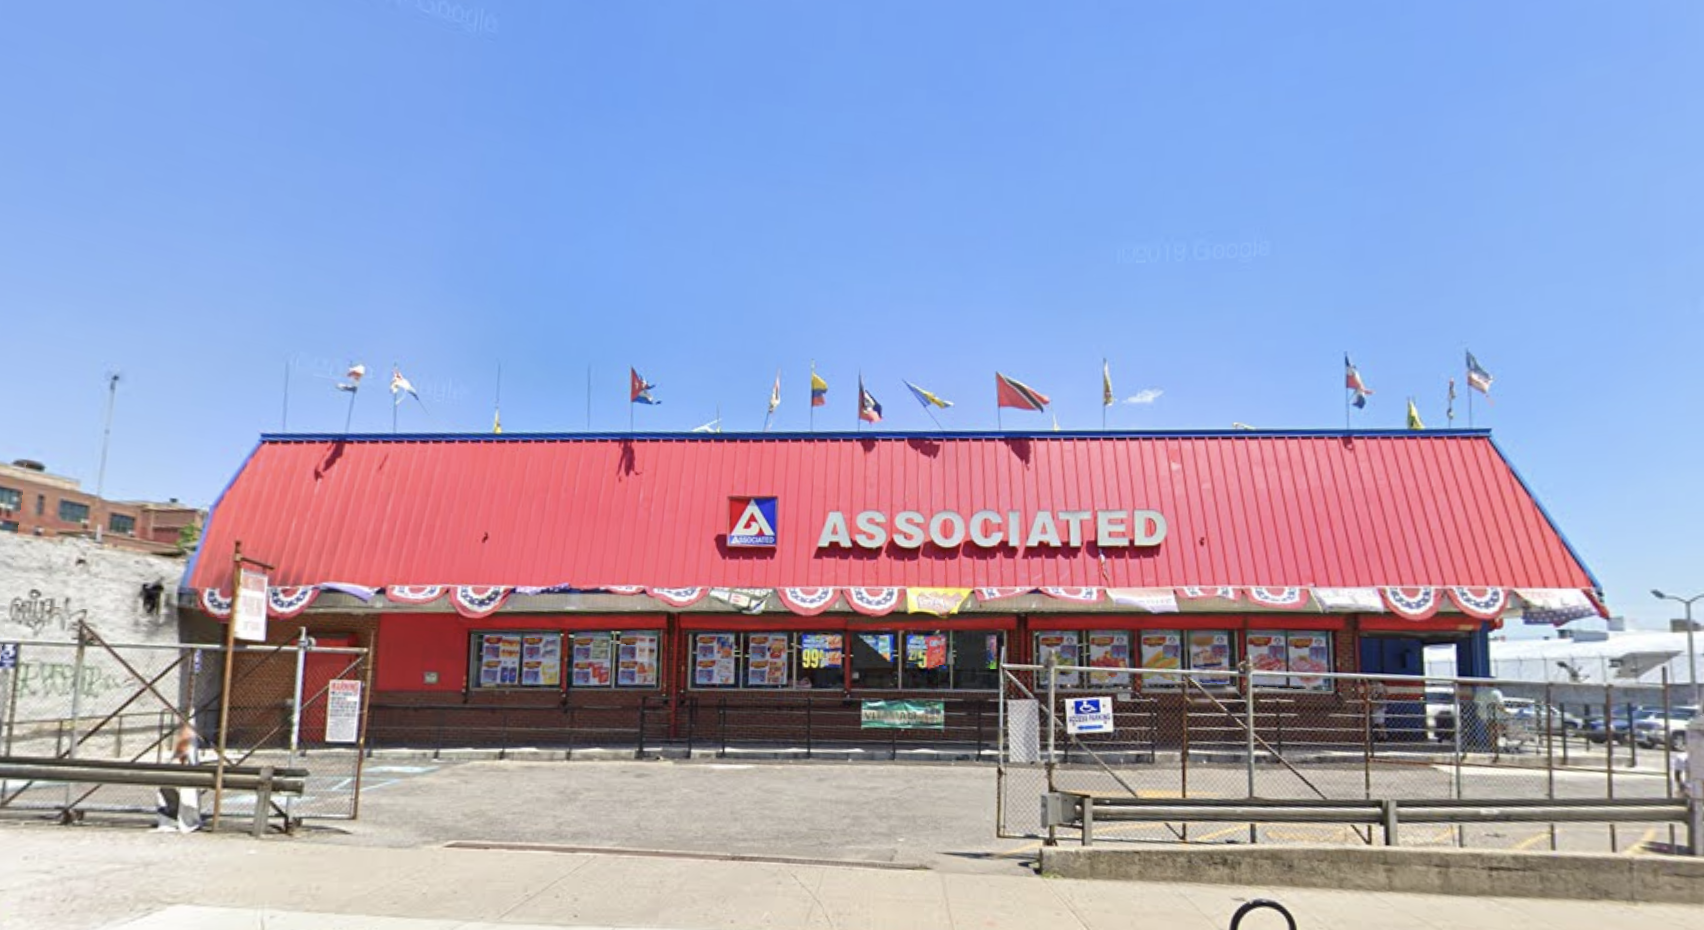 The exterior of the Nostrand Avenue Associated supermarket, which has a red roof